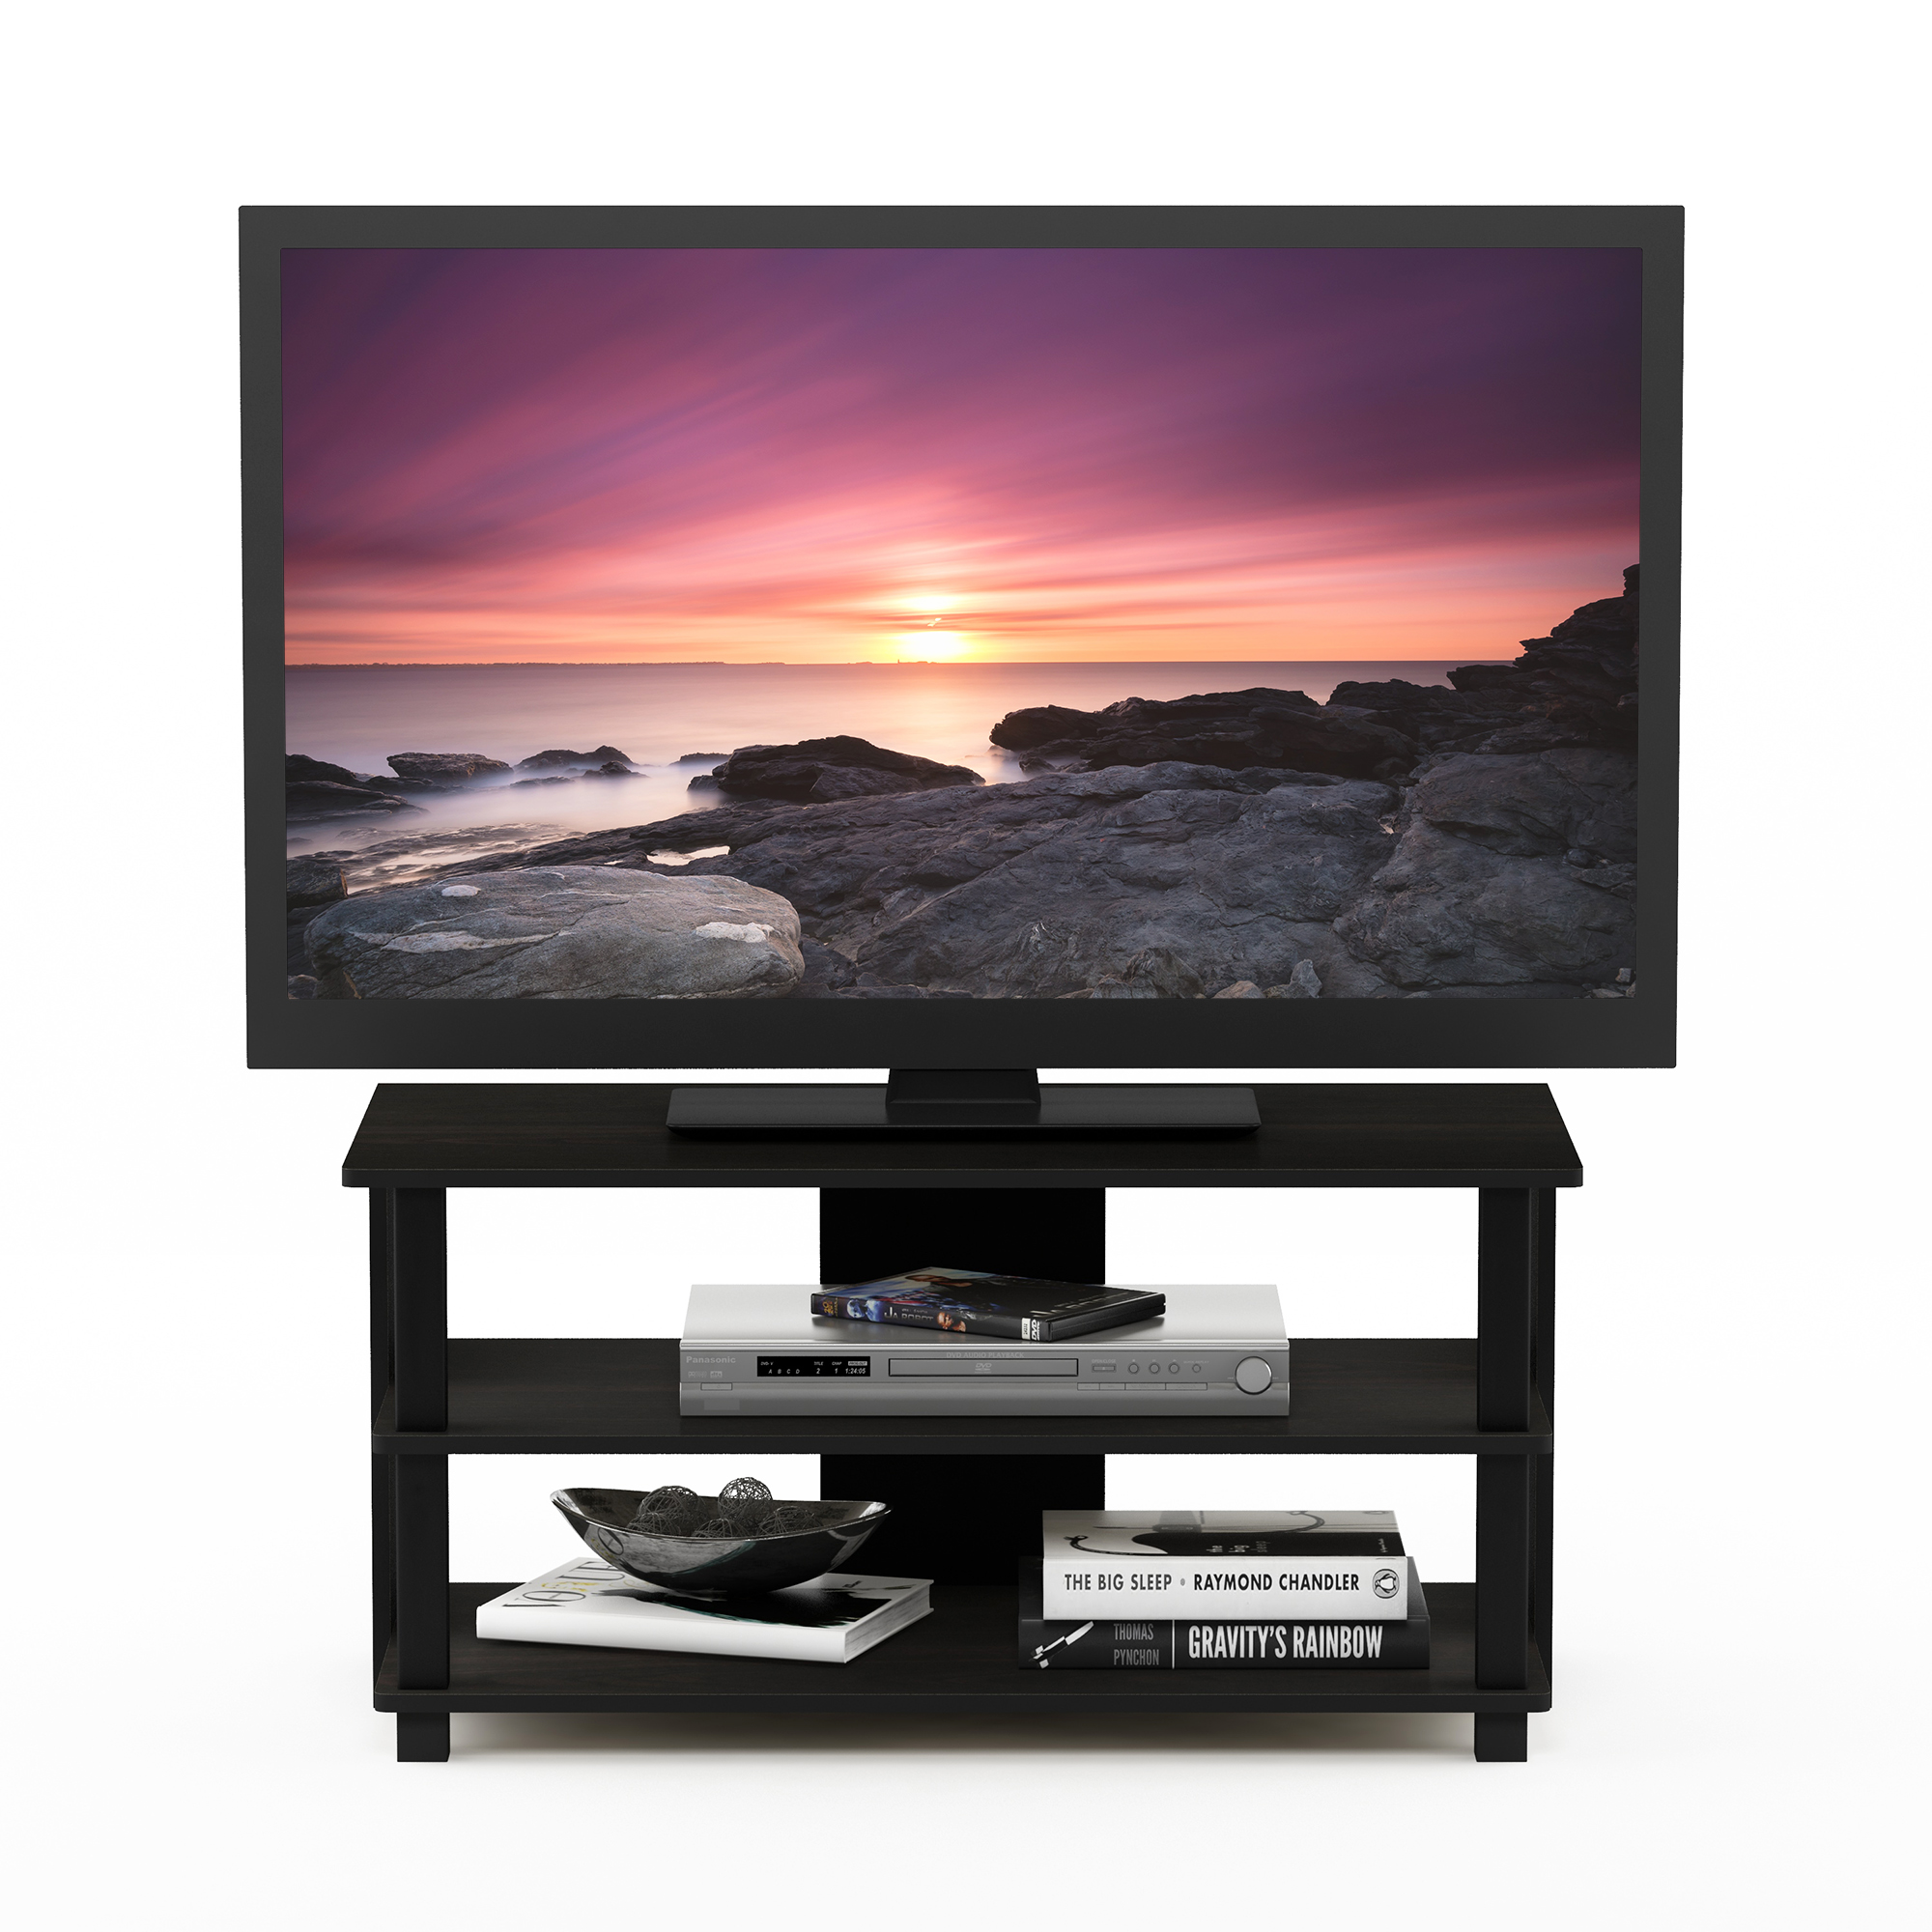 Furinno Sully 3-Tier TV Stand for TV up to 40, Espresso/Black, 17076EX/BK